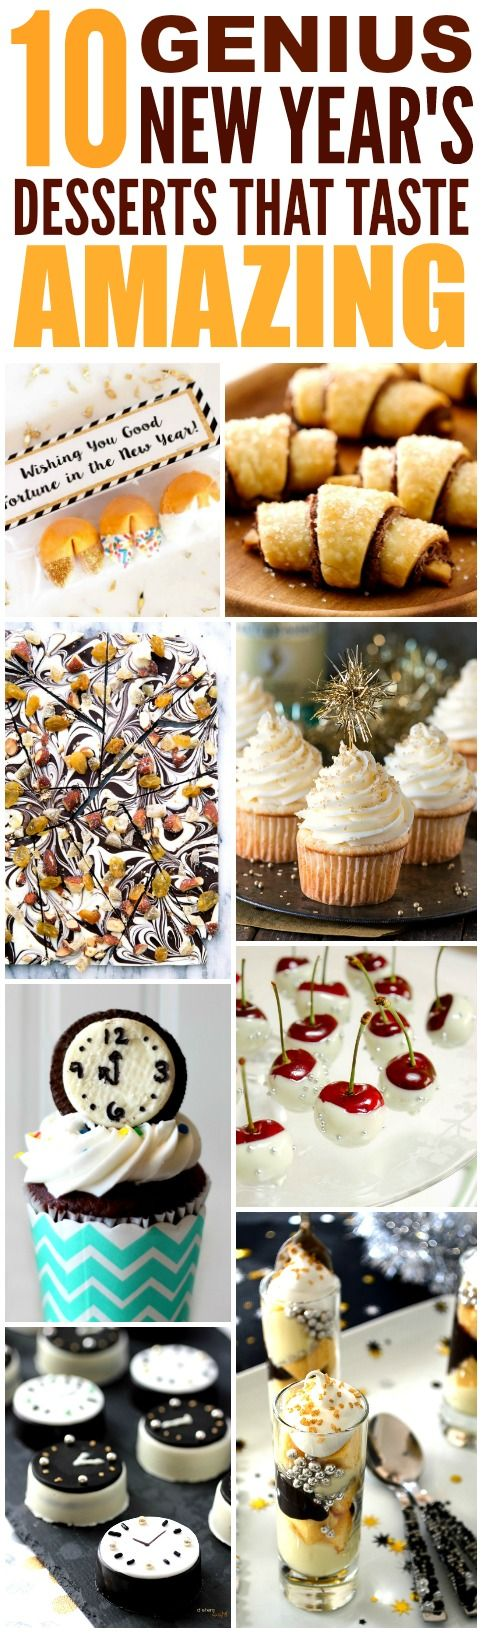 Bien connu Best 25+ New year's desserts ideas on Pinterest | New year's food  MJ36